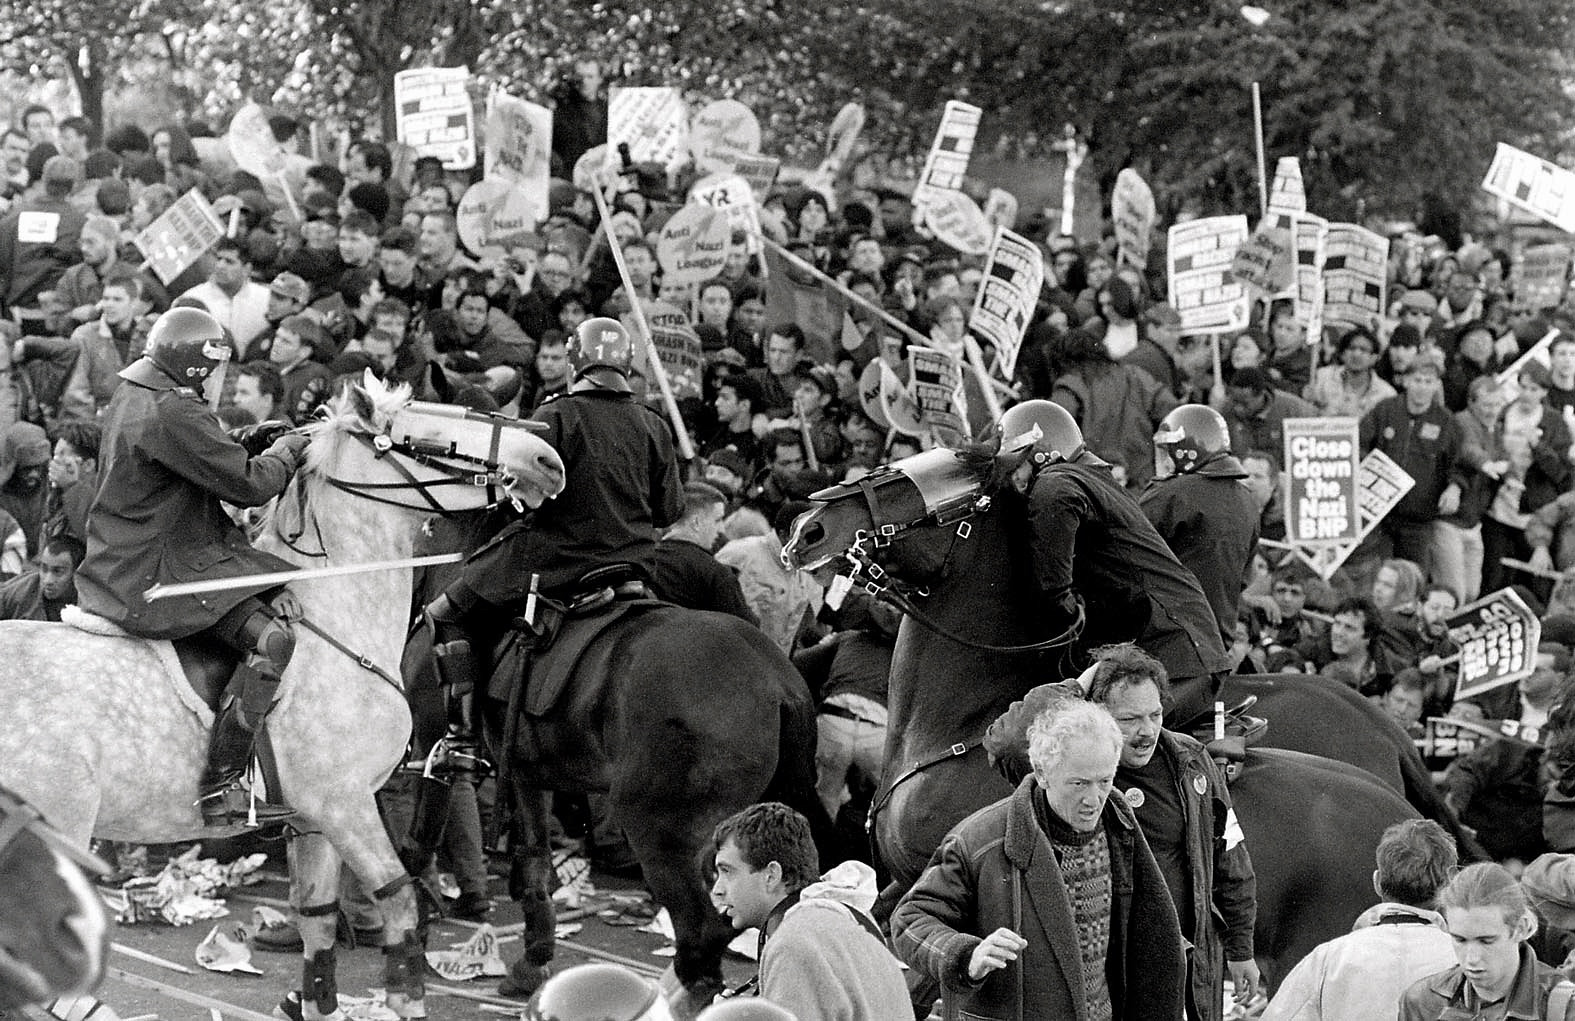 Welling anti-fascist rally 1993